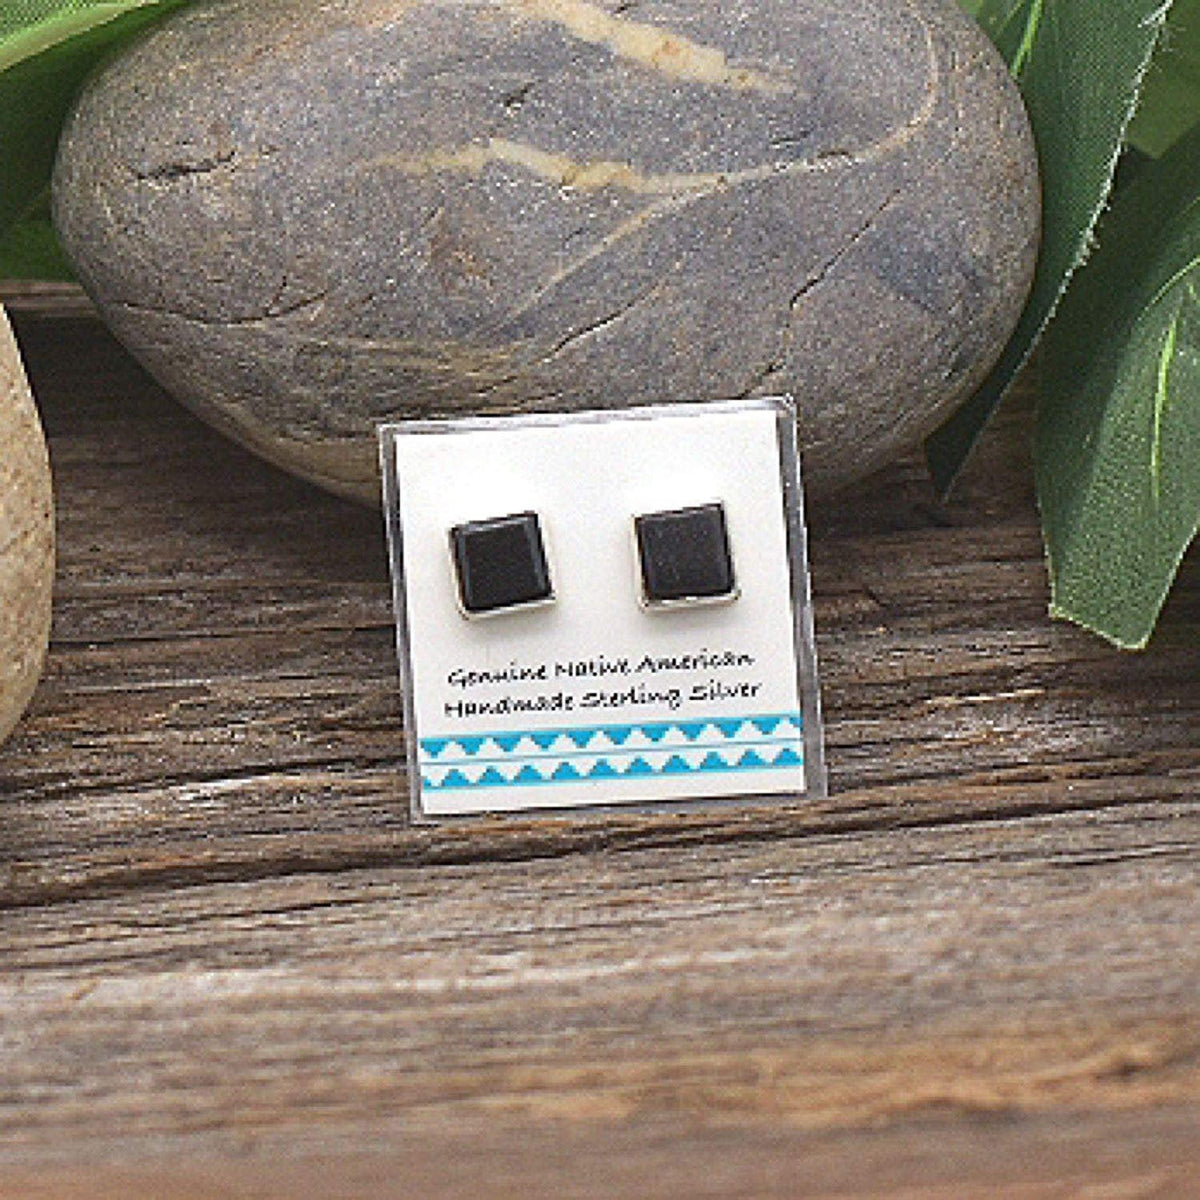 6mm Genuine Black Onyx Stud Earrings in 925 Sterling Silver, Native American USA Handmade, Nickle Free, Square